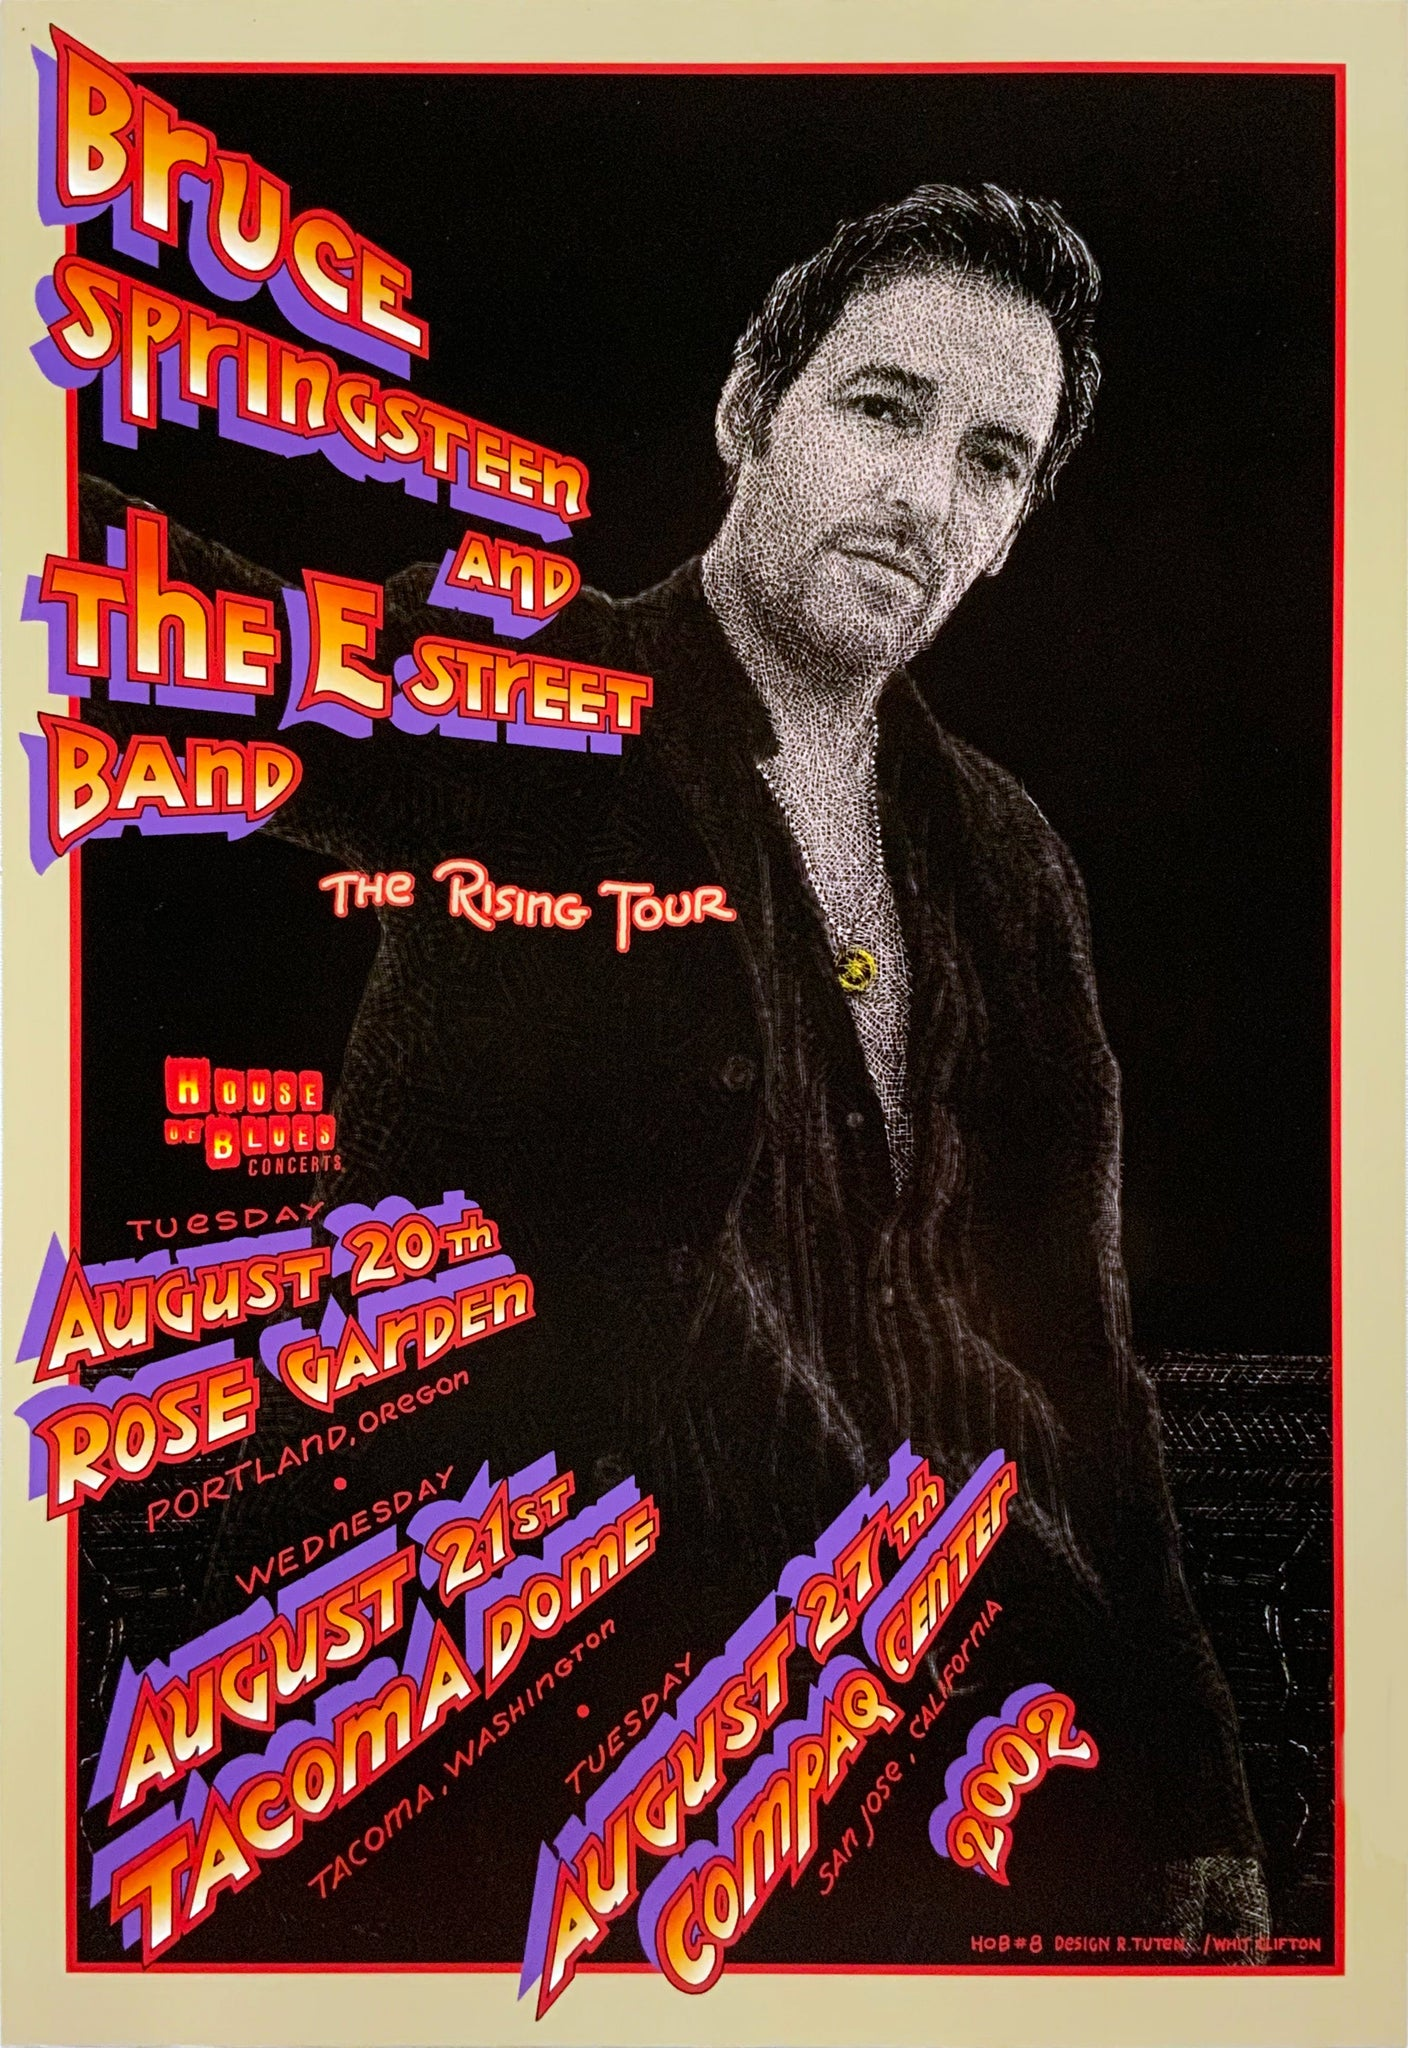 Bruce Springsteen and The E Street Band 2002 Rose Garden August 20th Poster